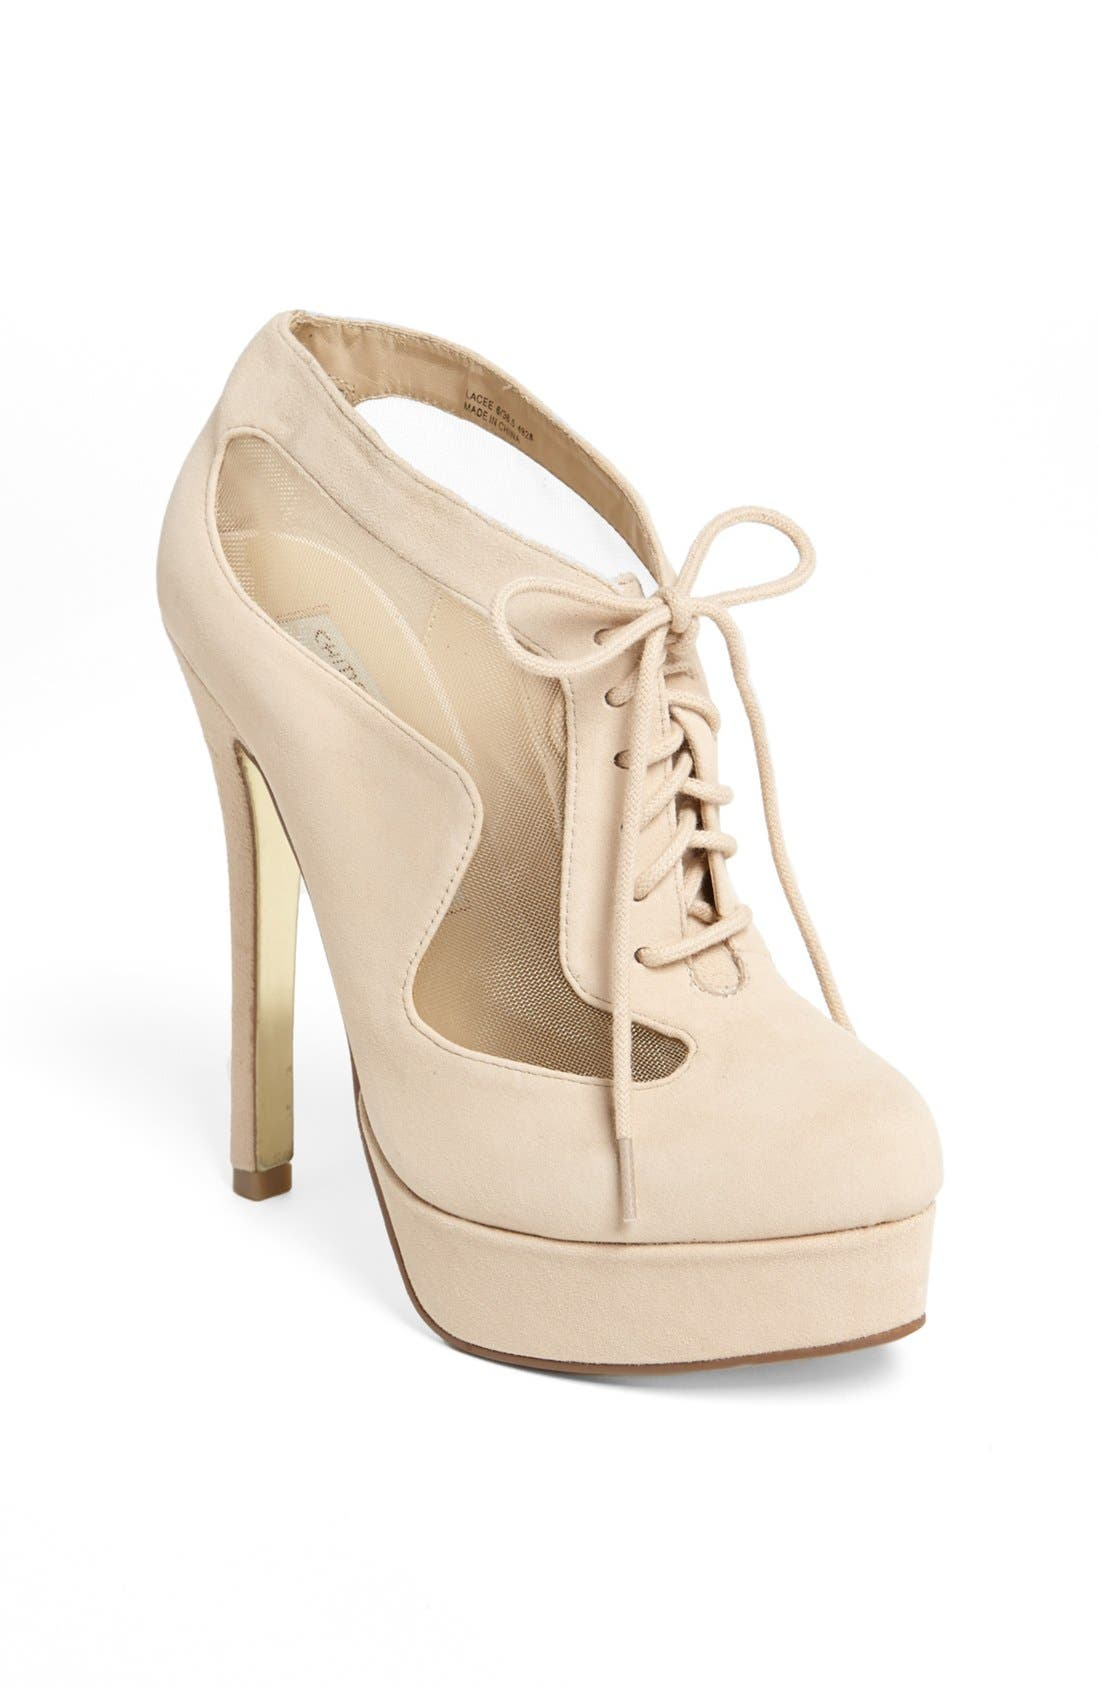 Alternate Image 1 Selected - Kristin Cavallari 'Lacee' Pump